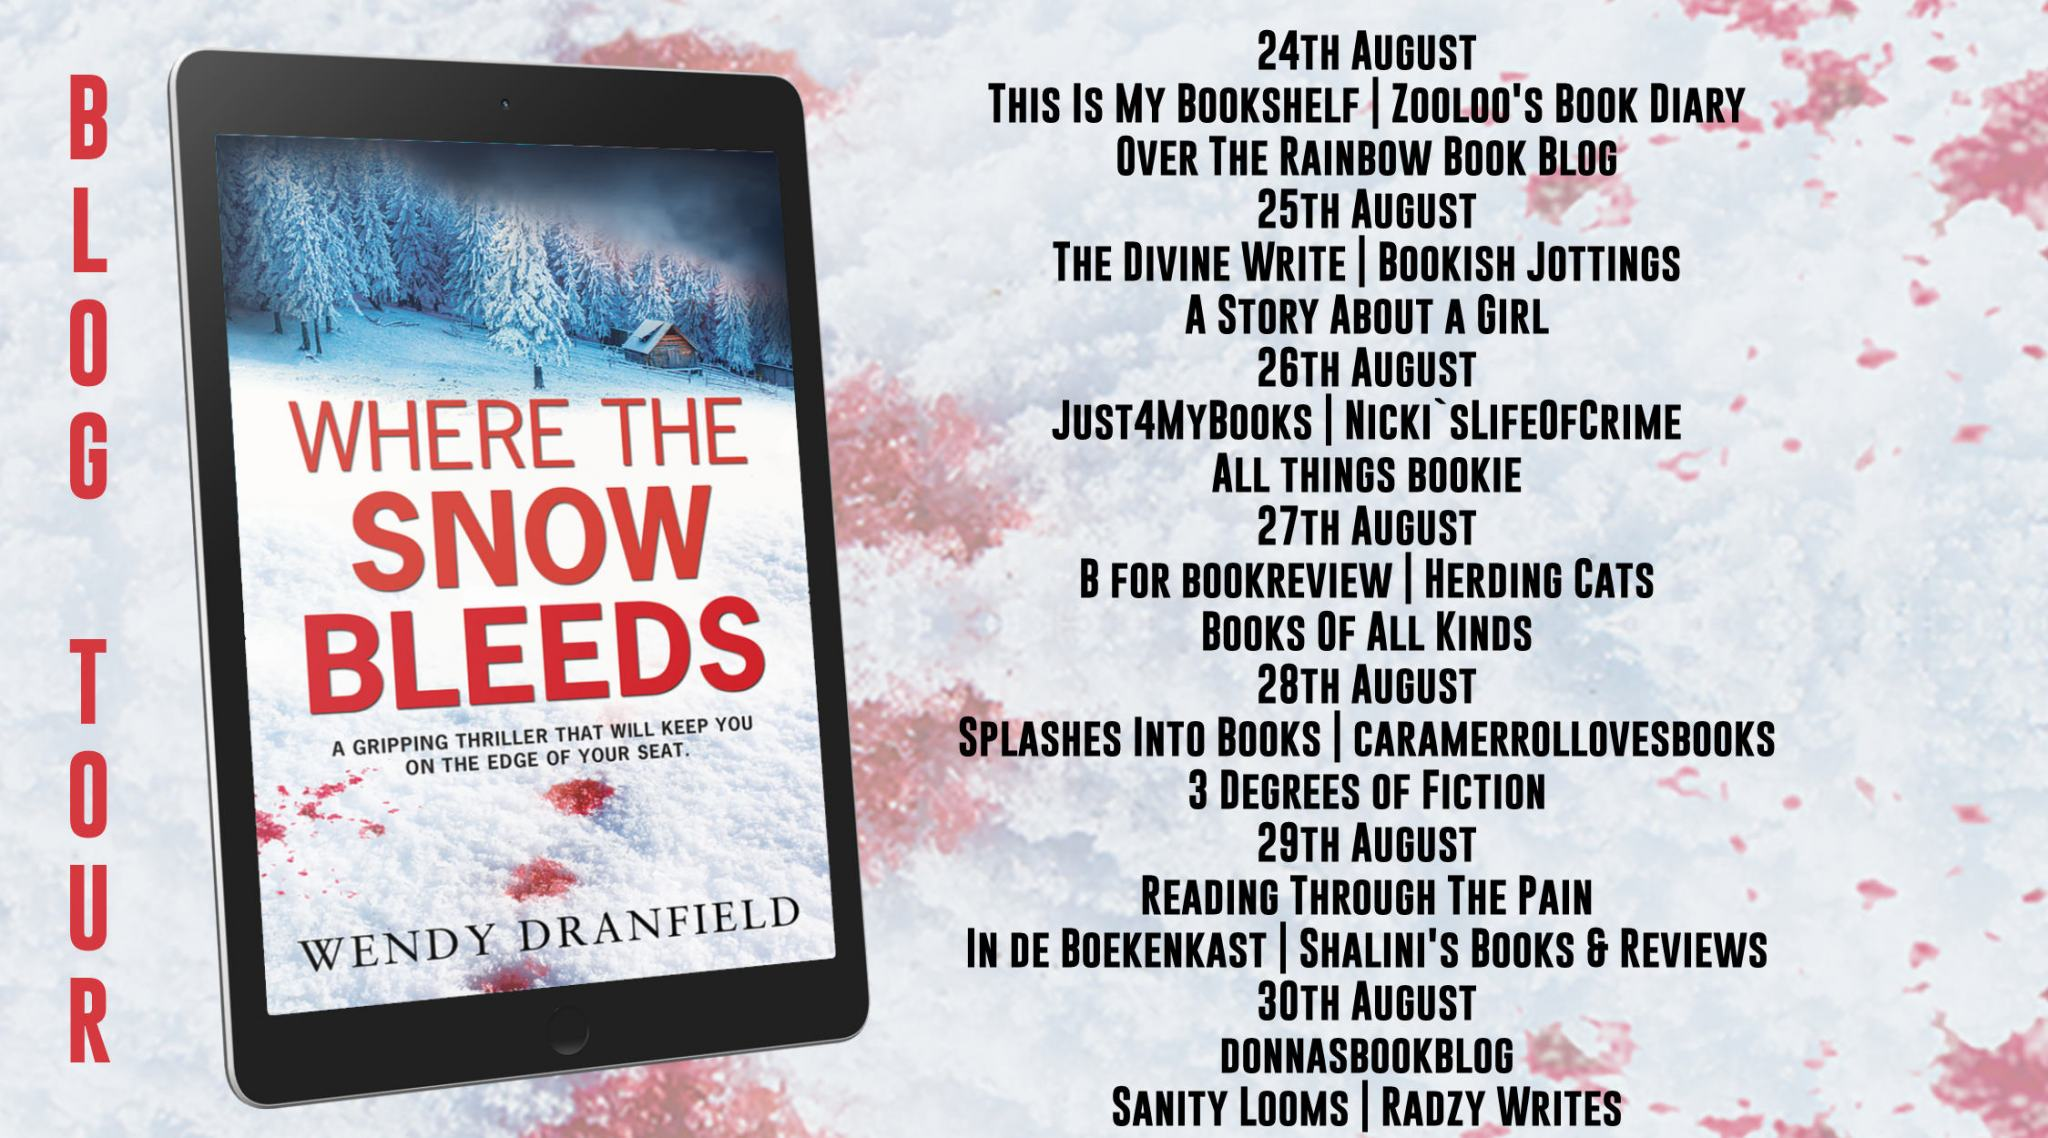 #BookReview of Where The Snow Bleeds by Wendy Dranfield @WendyDranfield @Rararesources @Rubyfiction #deanmatheson